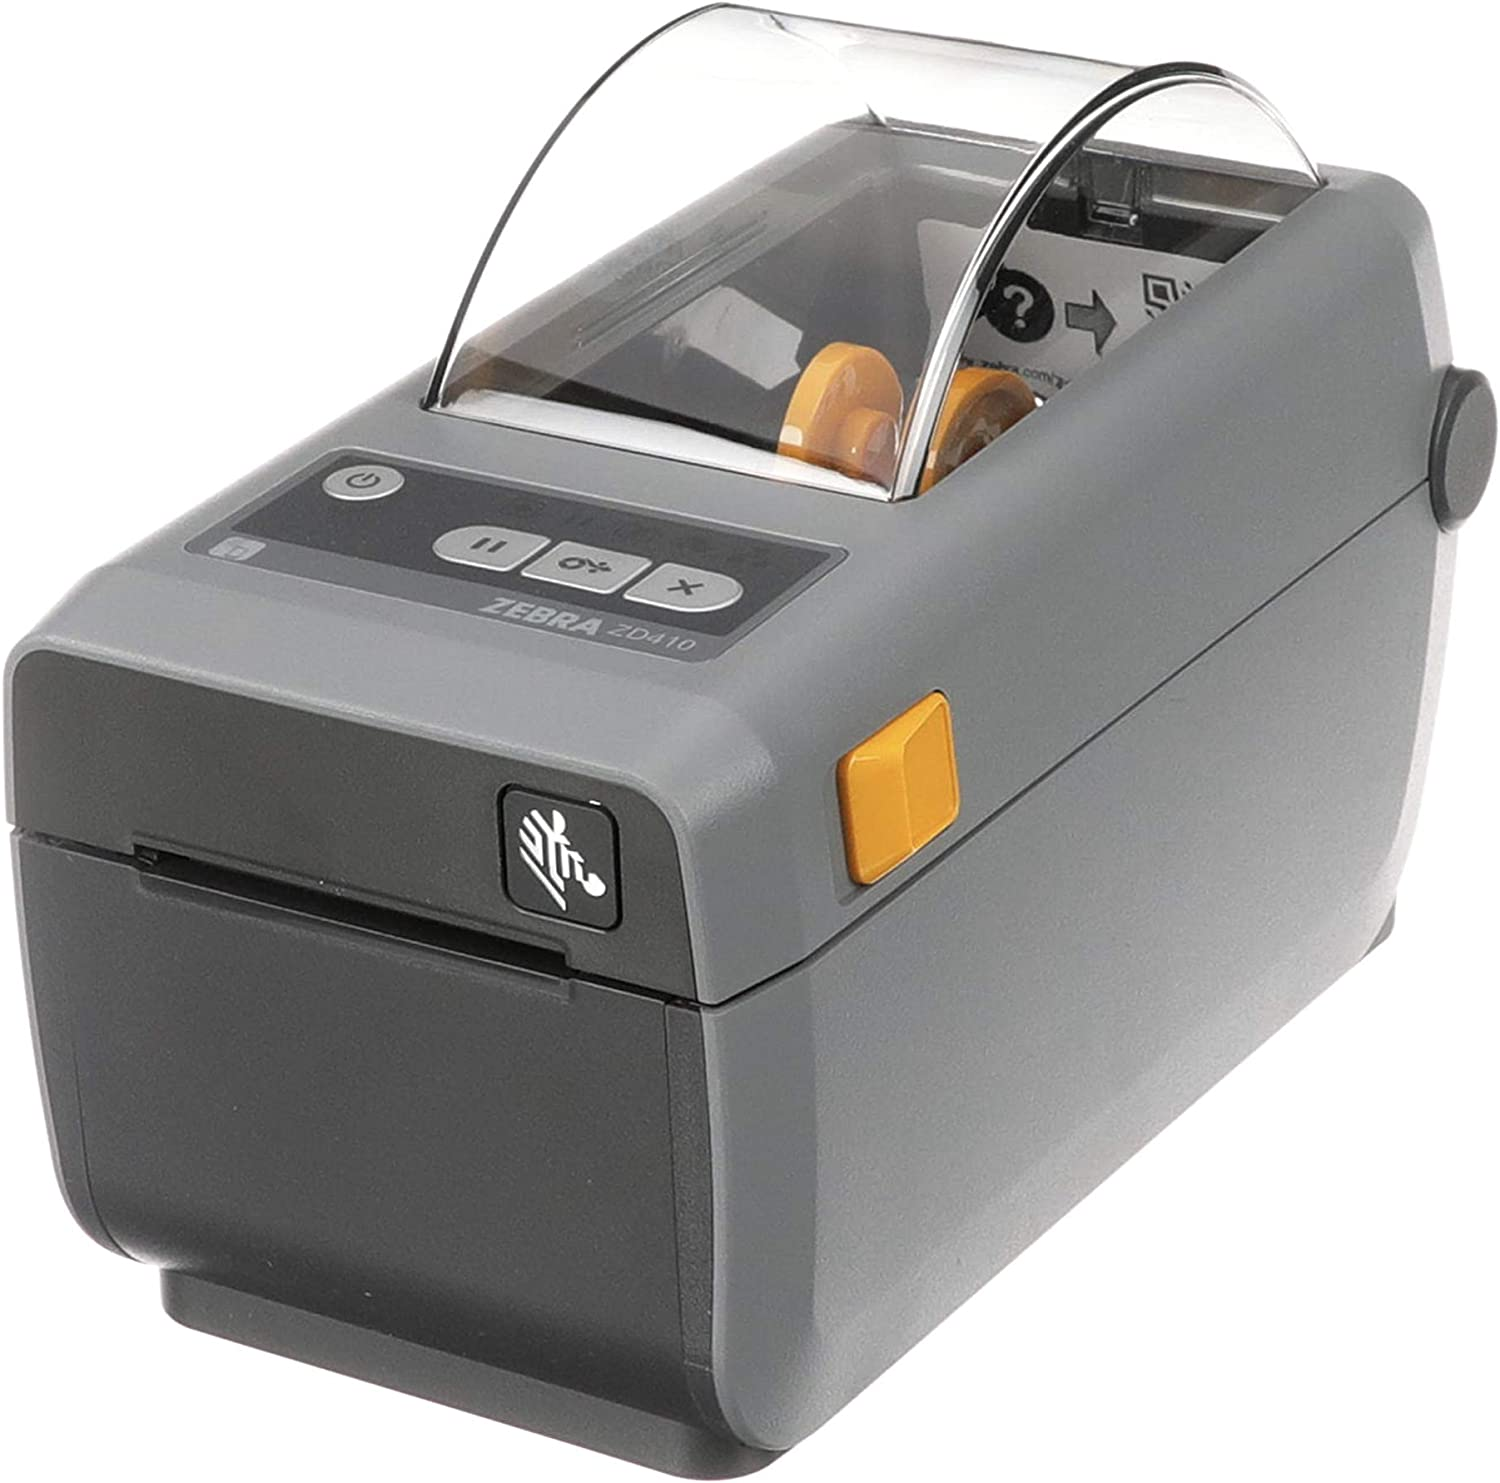 Zebra - ZD410 Direct Thermal Desktop Printer for labels, Receipts, Barcodes, Tags - Print Width of 2 in - USB, Ethernet Connectivity - ZD41022-D01E00EZ